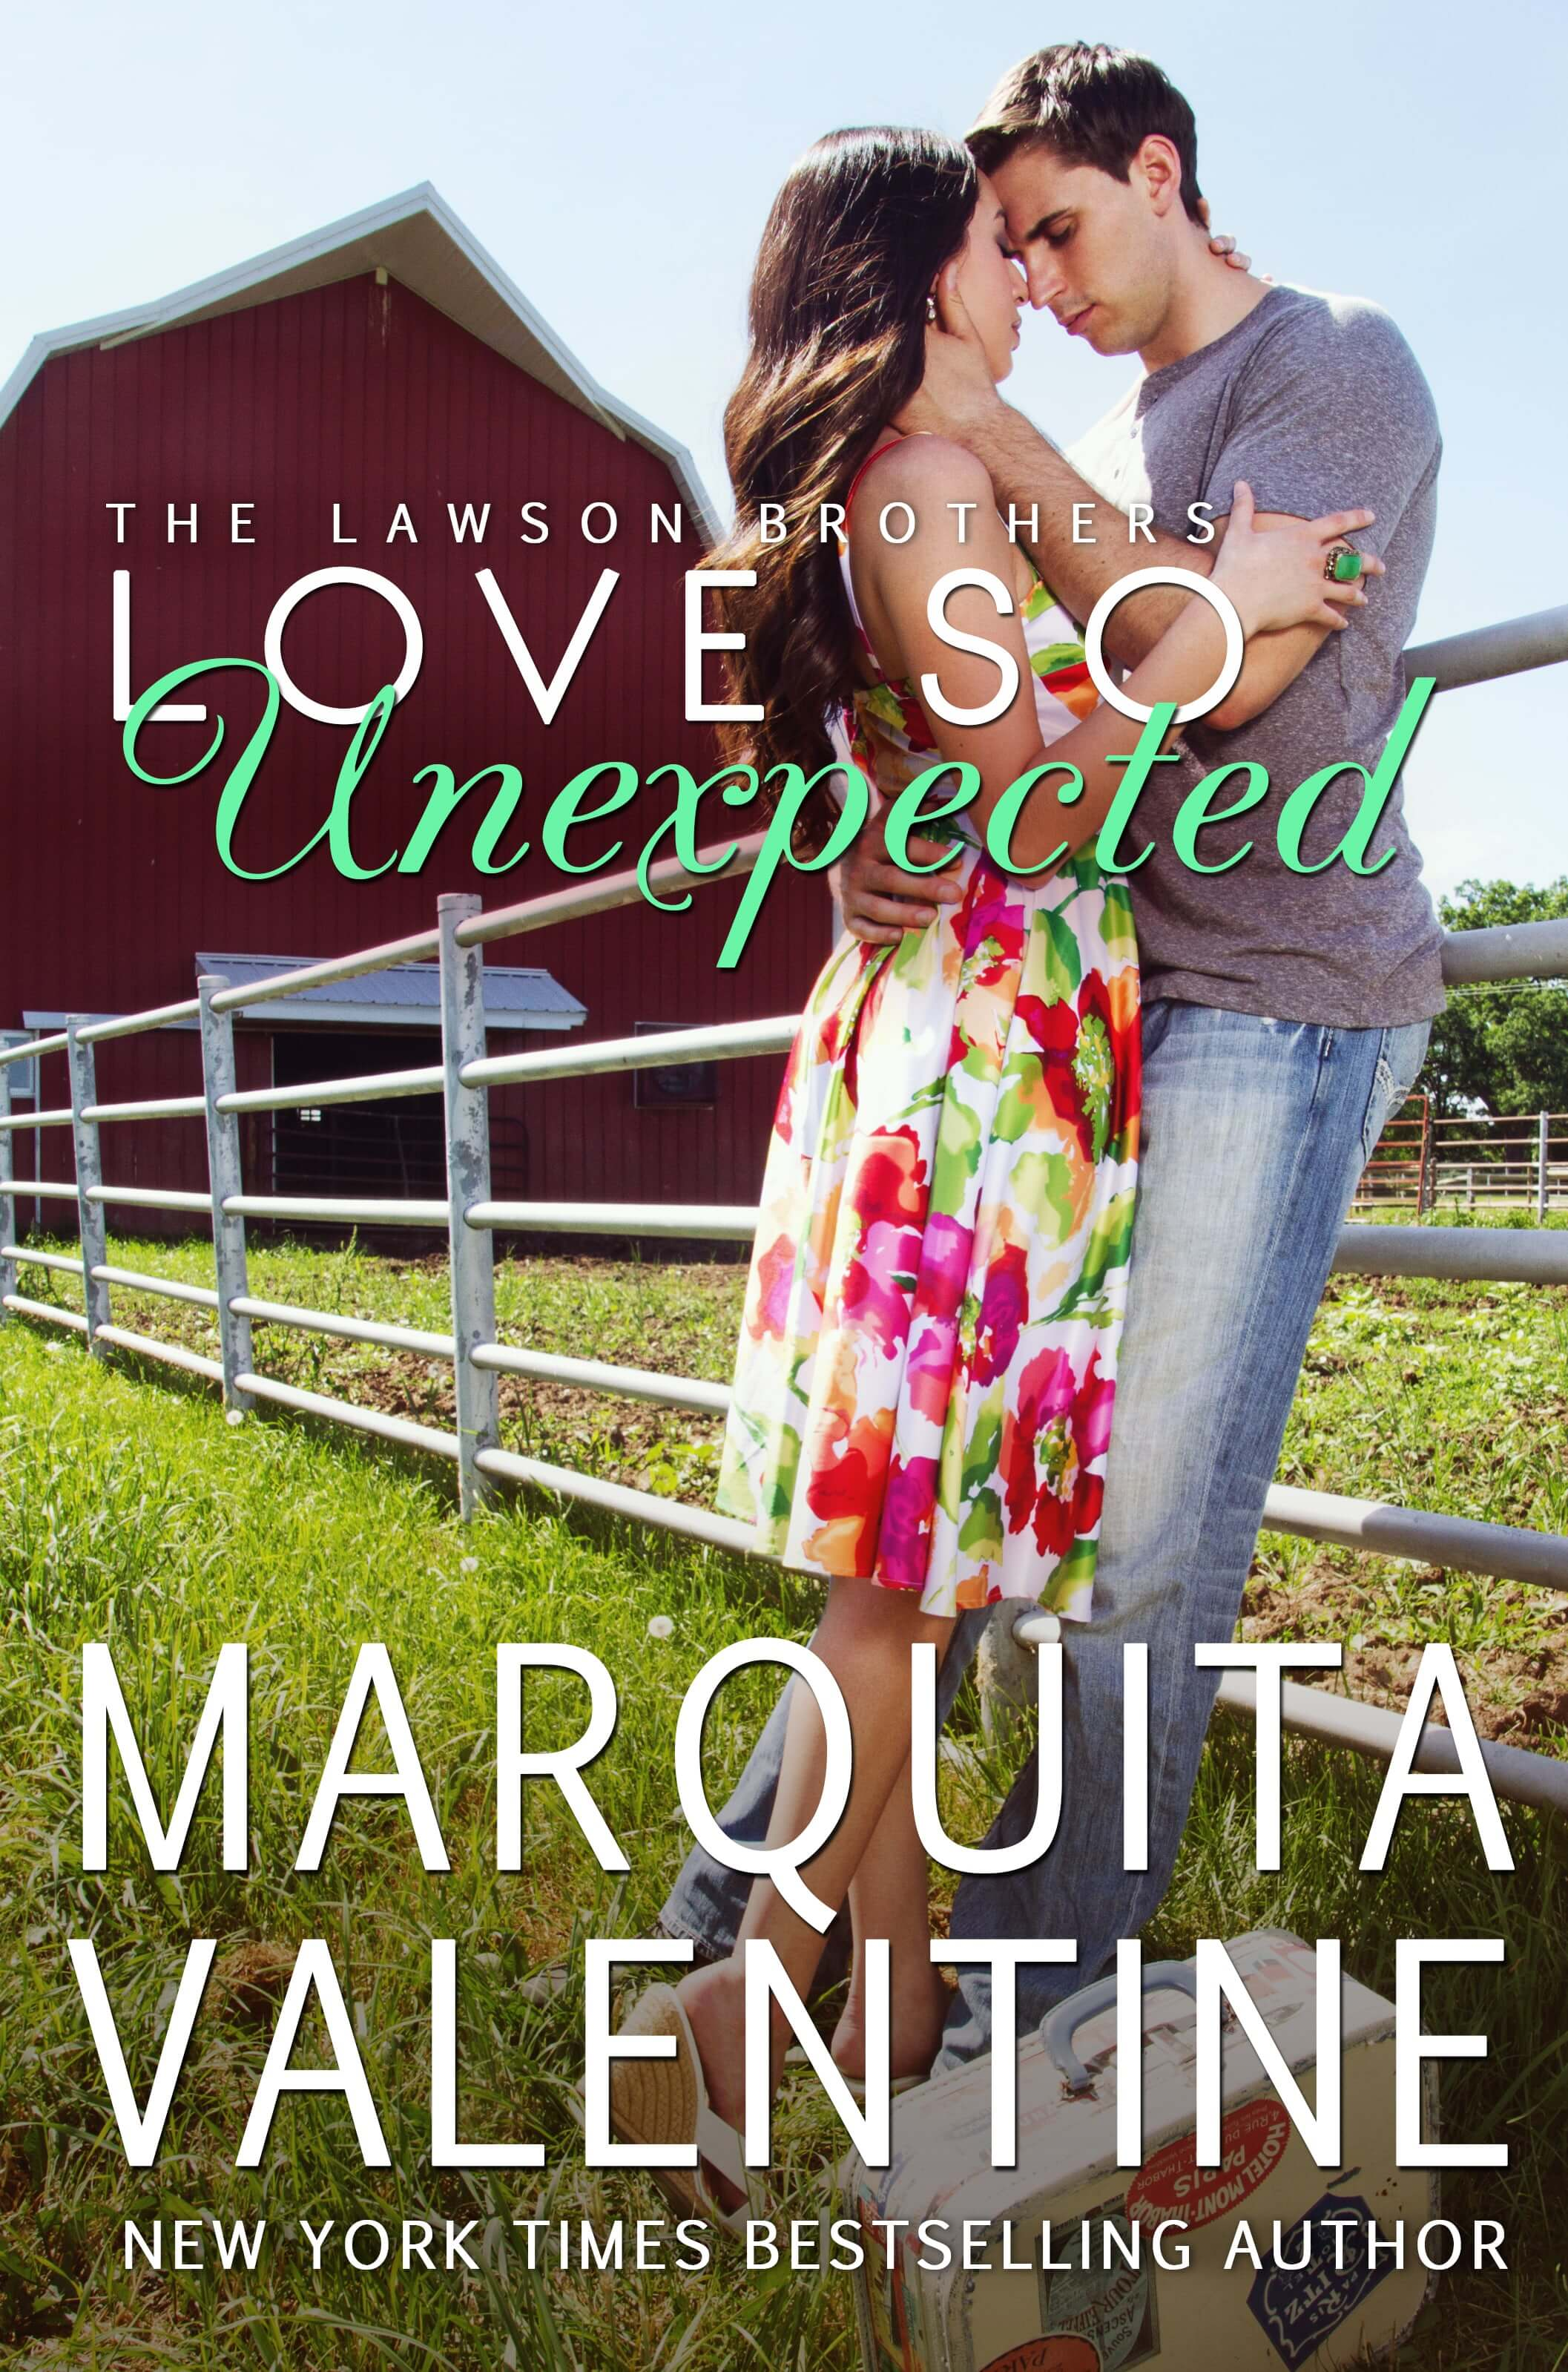 Love So Unexpected: Release Day!